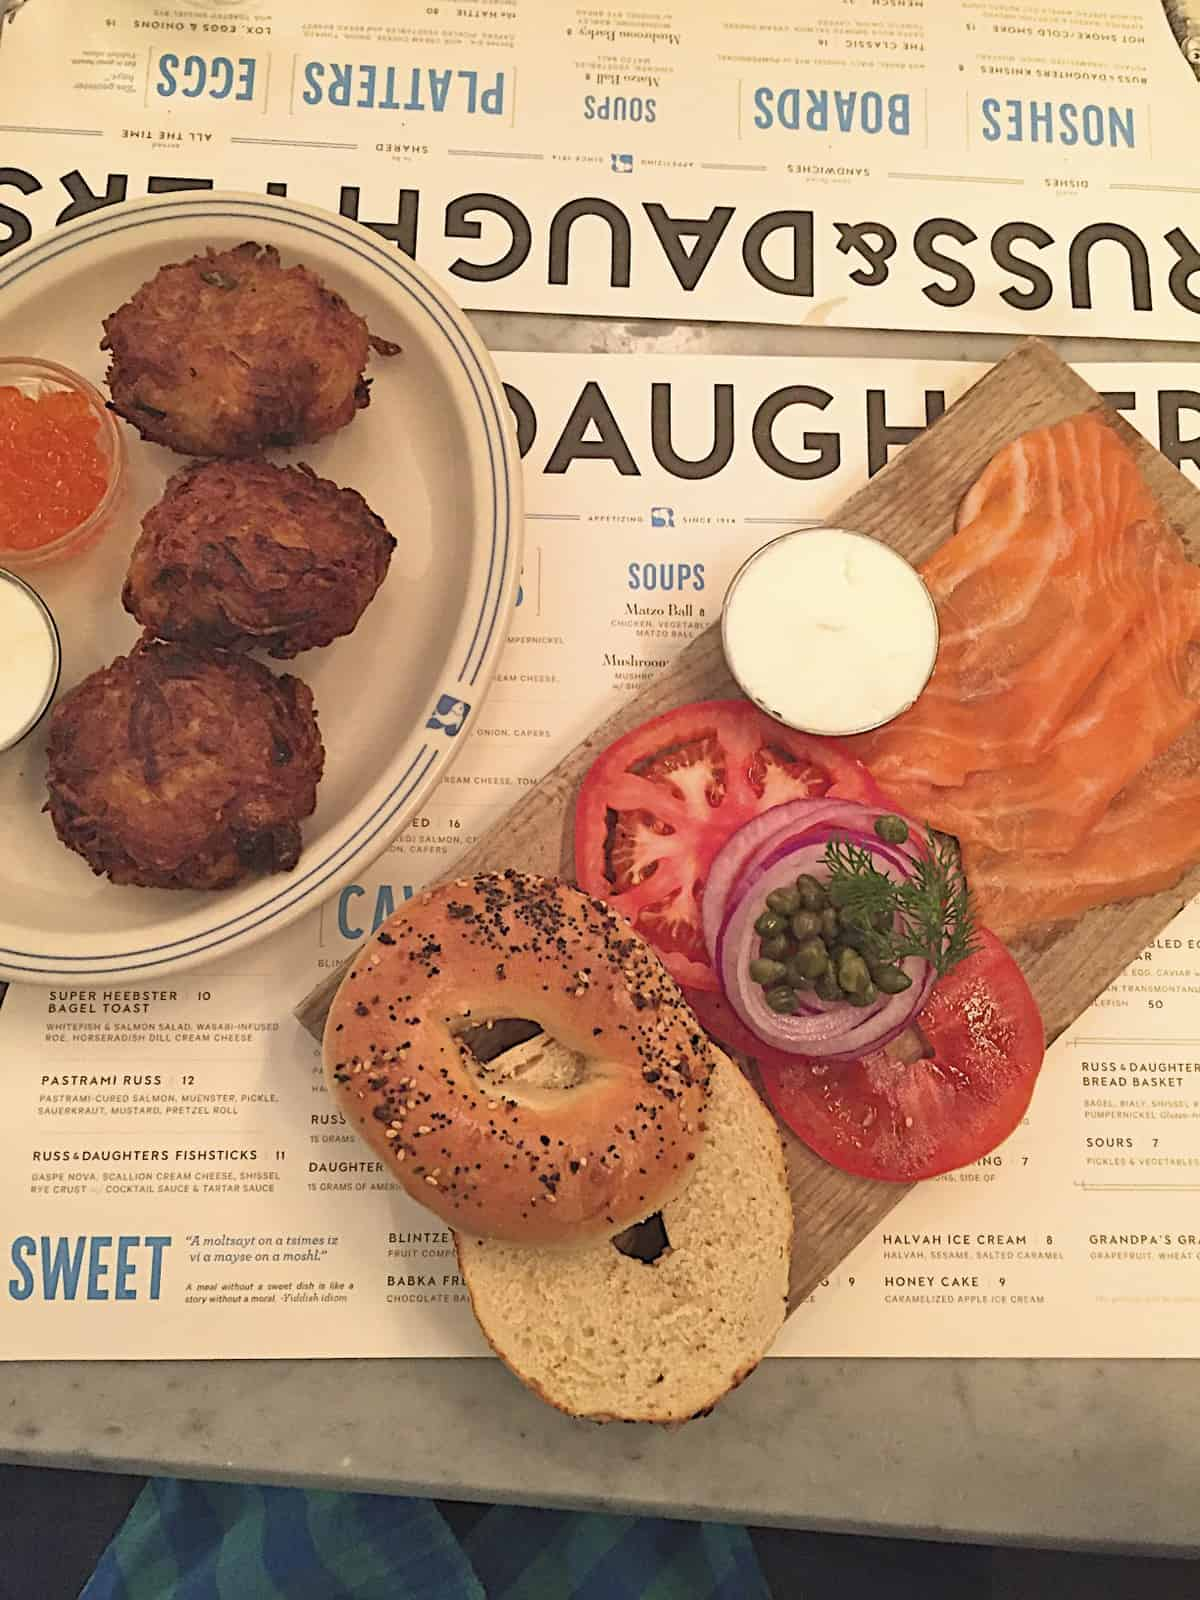 Russ and Daughters Cafe - The BakerMama Taste of NYC